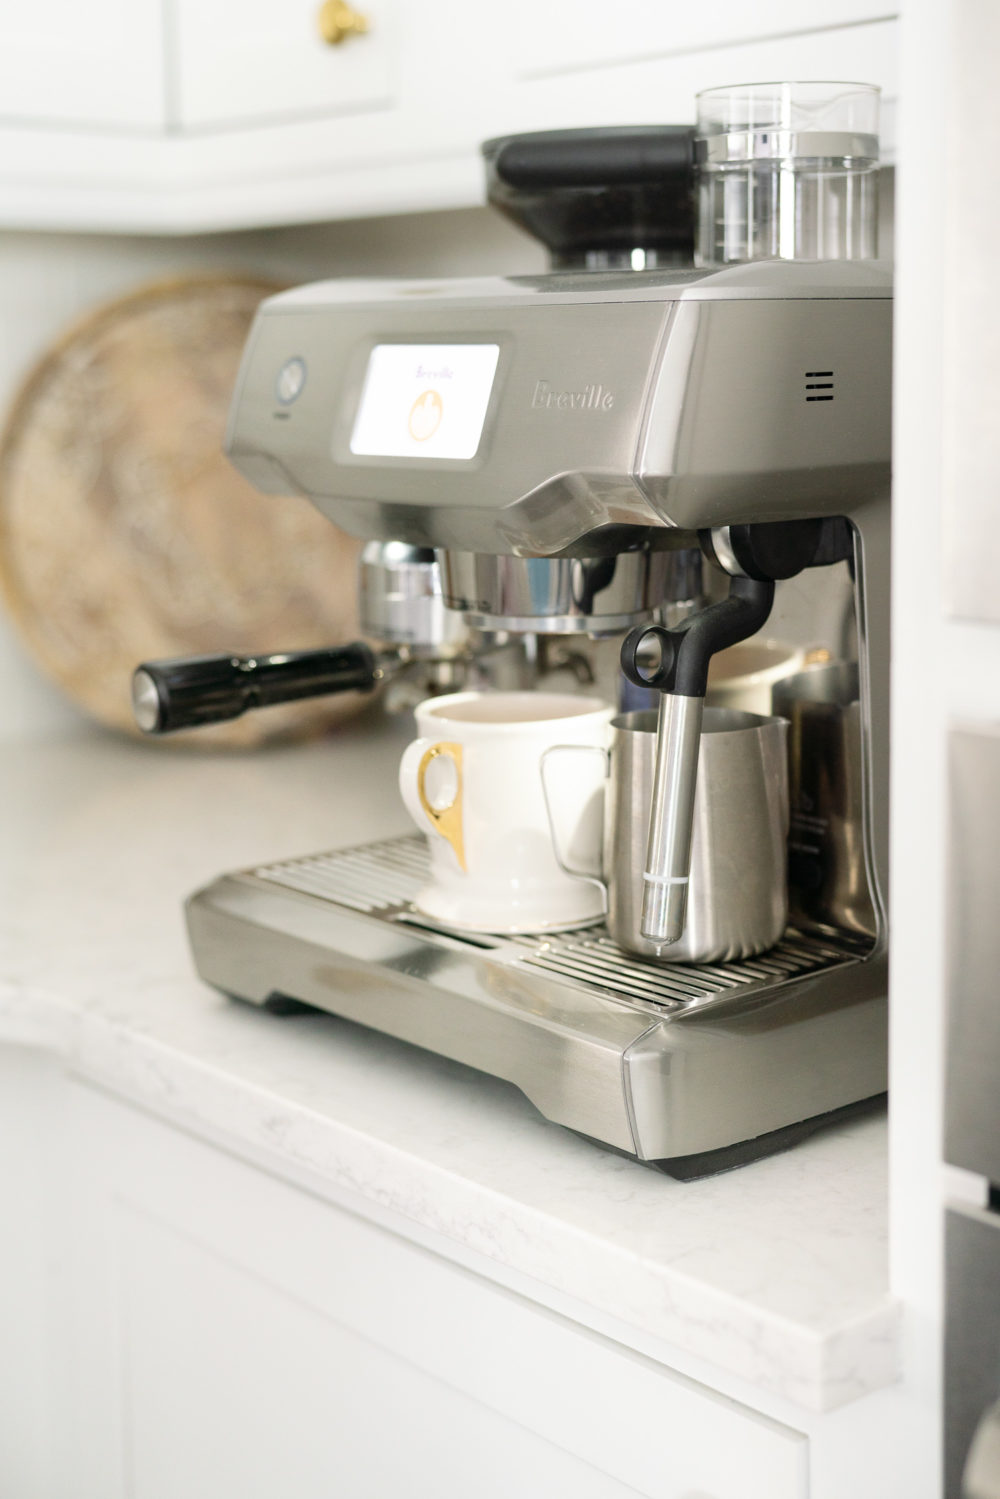 Petite Fashion Blog | eBay Home Appliances | Breville Barista Pro